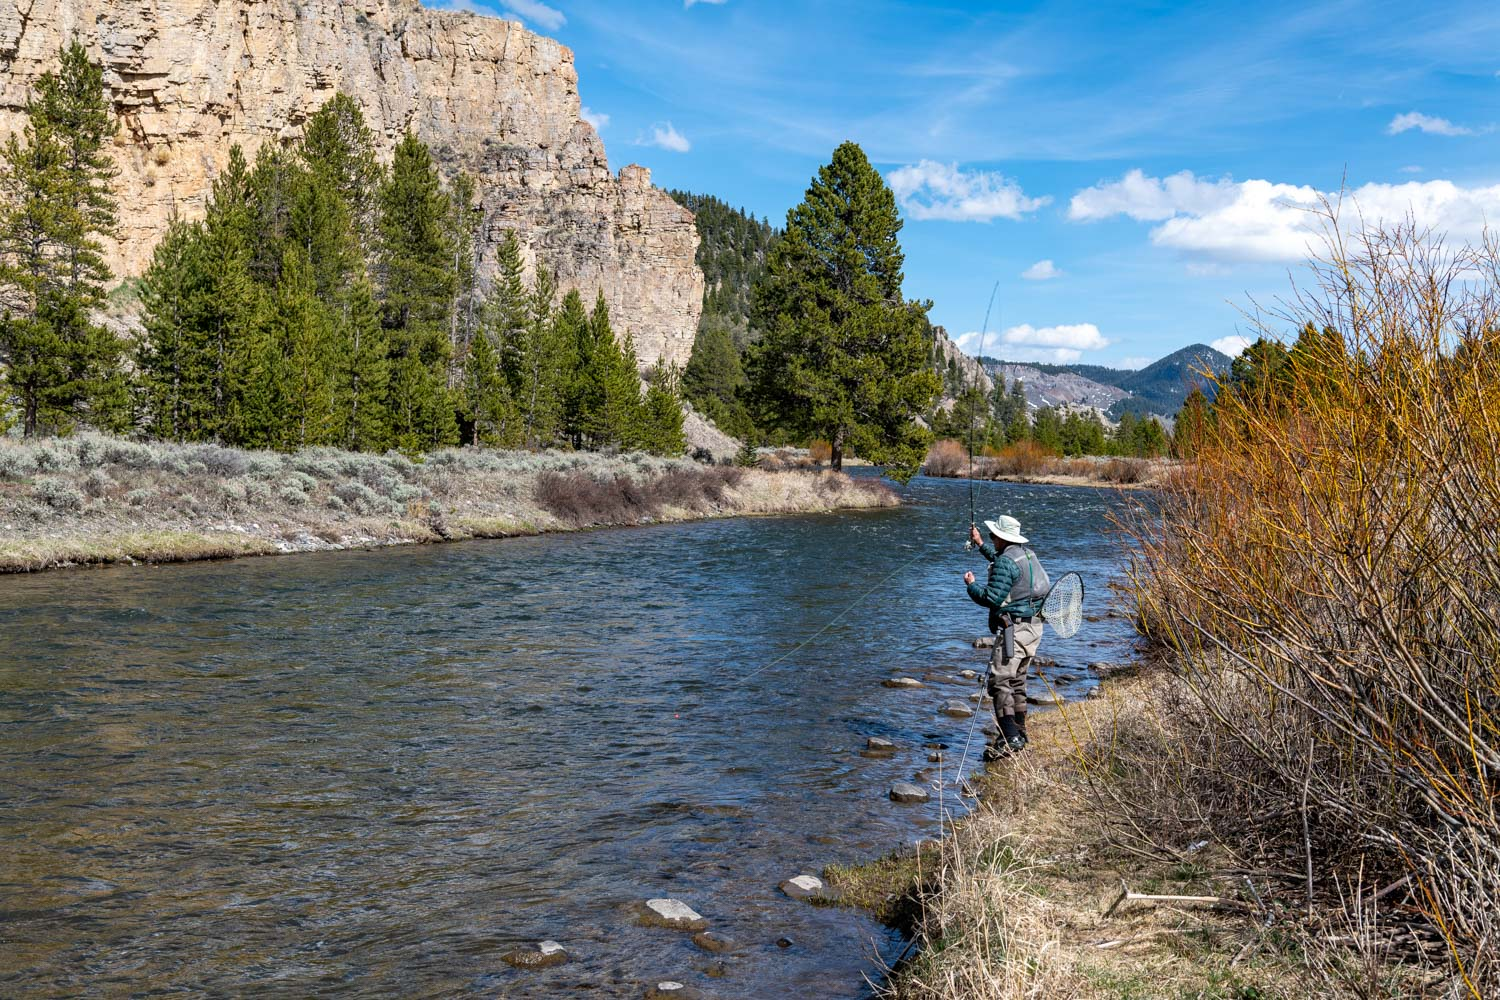 A fly fisherman in the Gallatin River